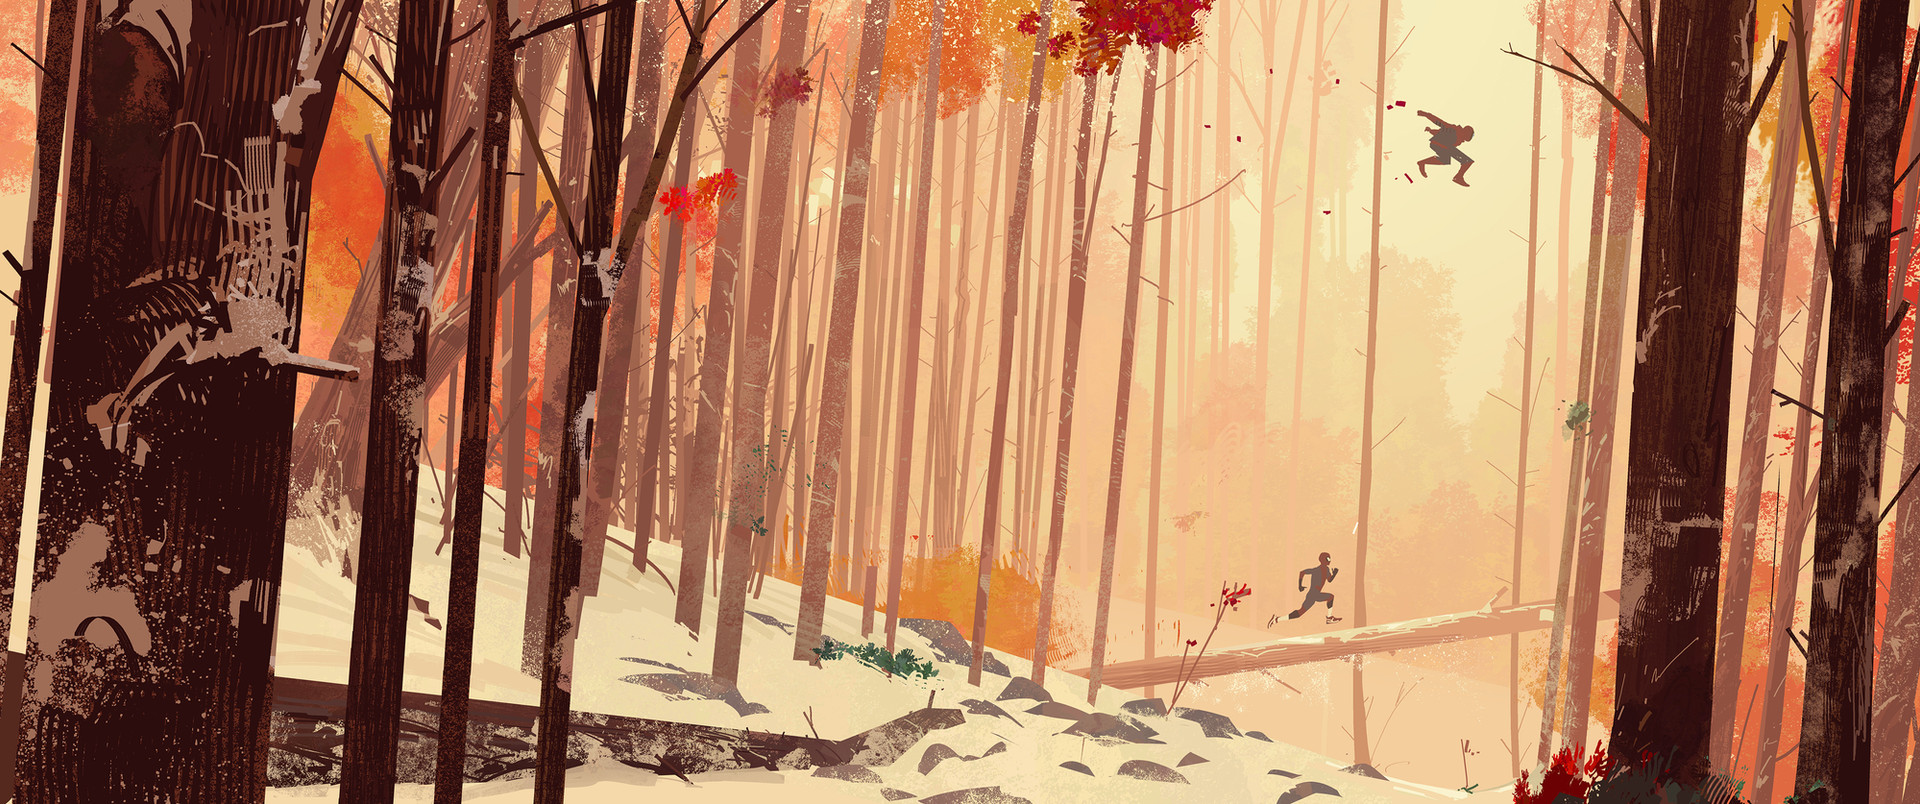 Oct_labs_forest_002.jpg